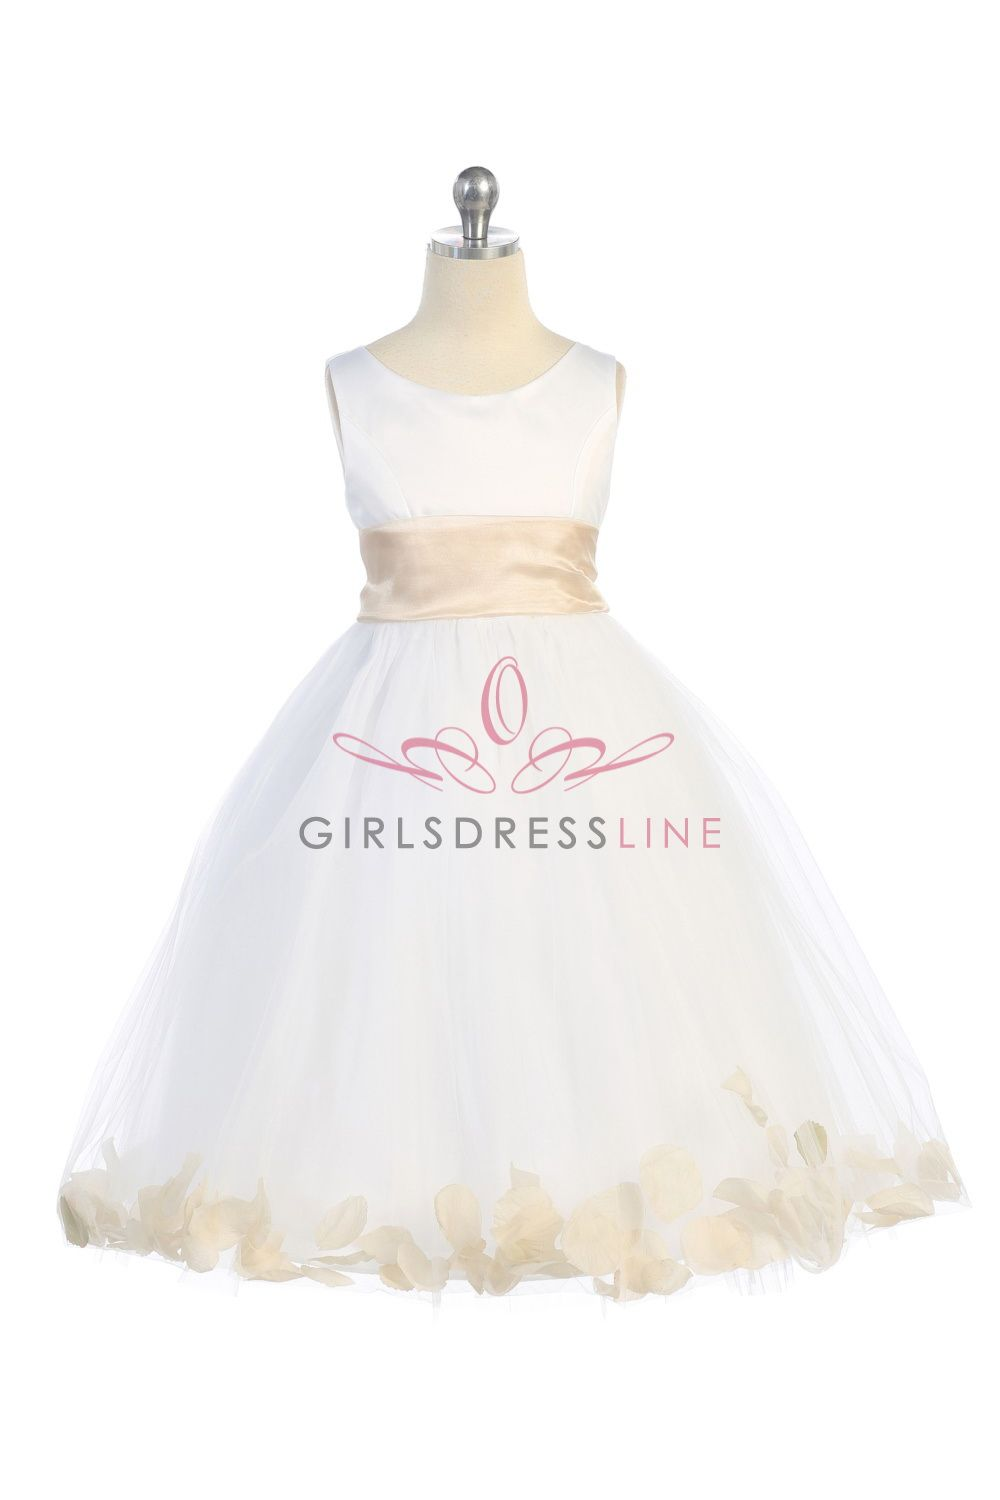 76f6b377556 White Champagne Satin   Tulle Flower Girl Dress with Petals   Sash B1170-CM   40.95 on www.GirlsDressLine.Com